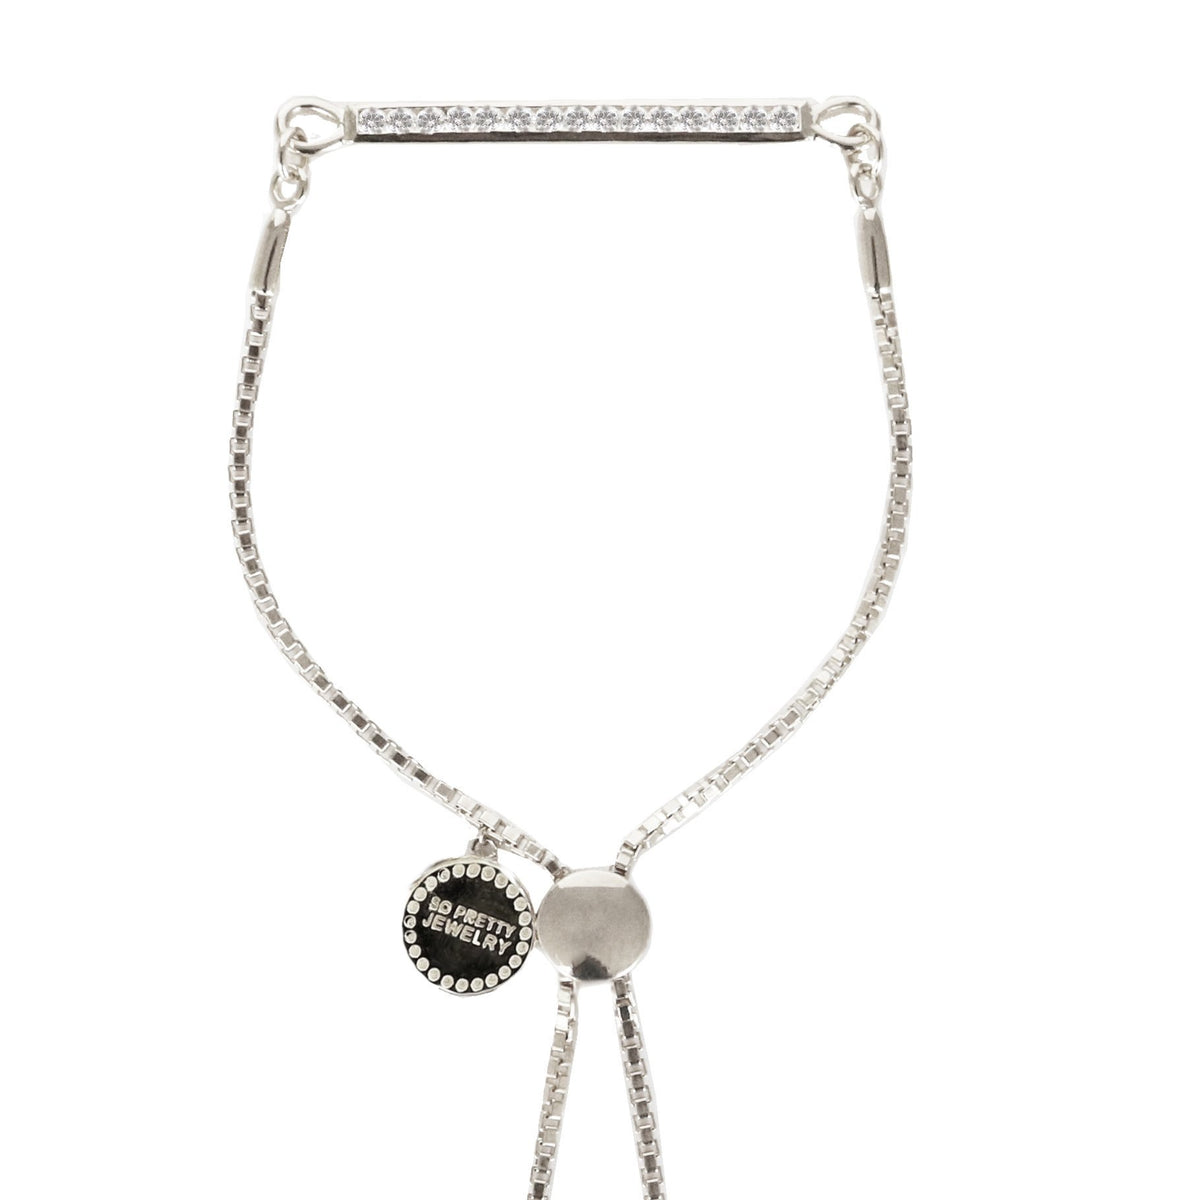 DREAM STARDUST ADJUSTABLE BRACELET - CUBIC ZIRCONIA & SILVER - SO PRETTY CARA COTTER